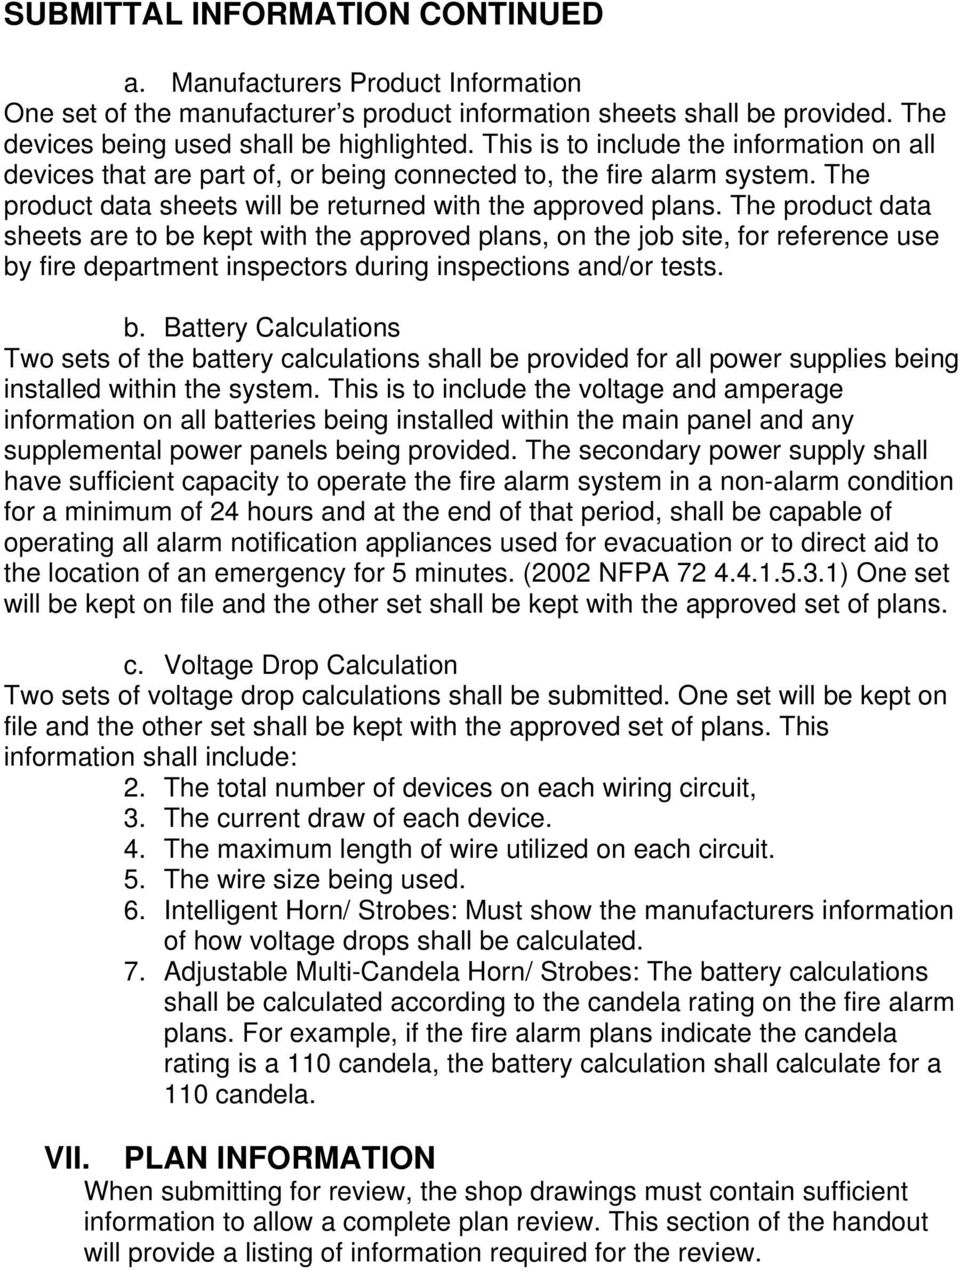 The product data sheets are to be kept with the approved plans, on the job site, for reference use by fire department inspectors during inspections and/or tests. b. Battery Calculations Two sets of the battery calculations shall be provided for all power supplies being installed within the system.